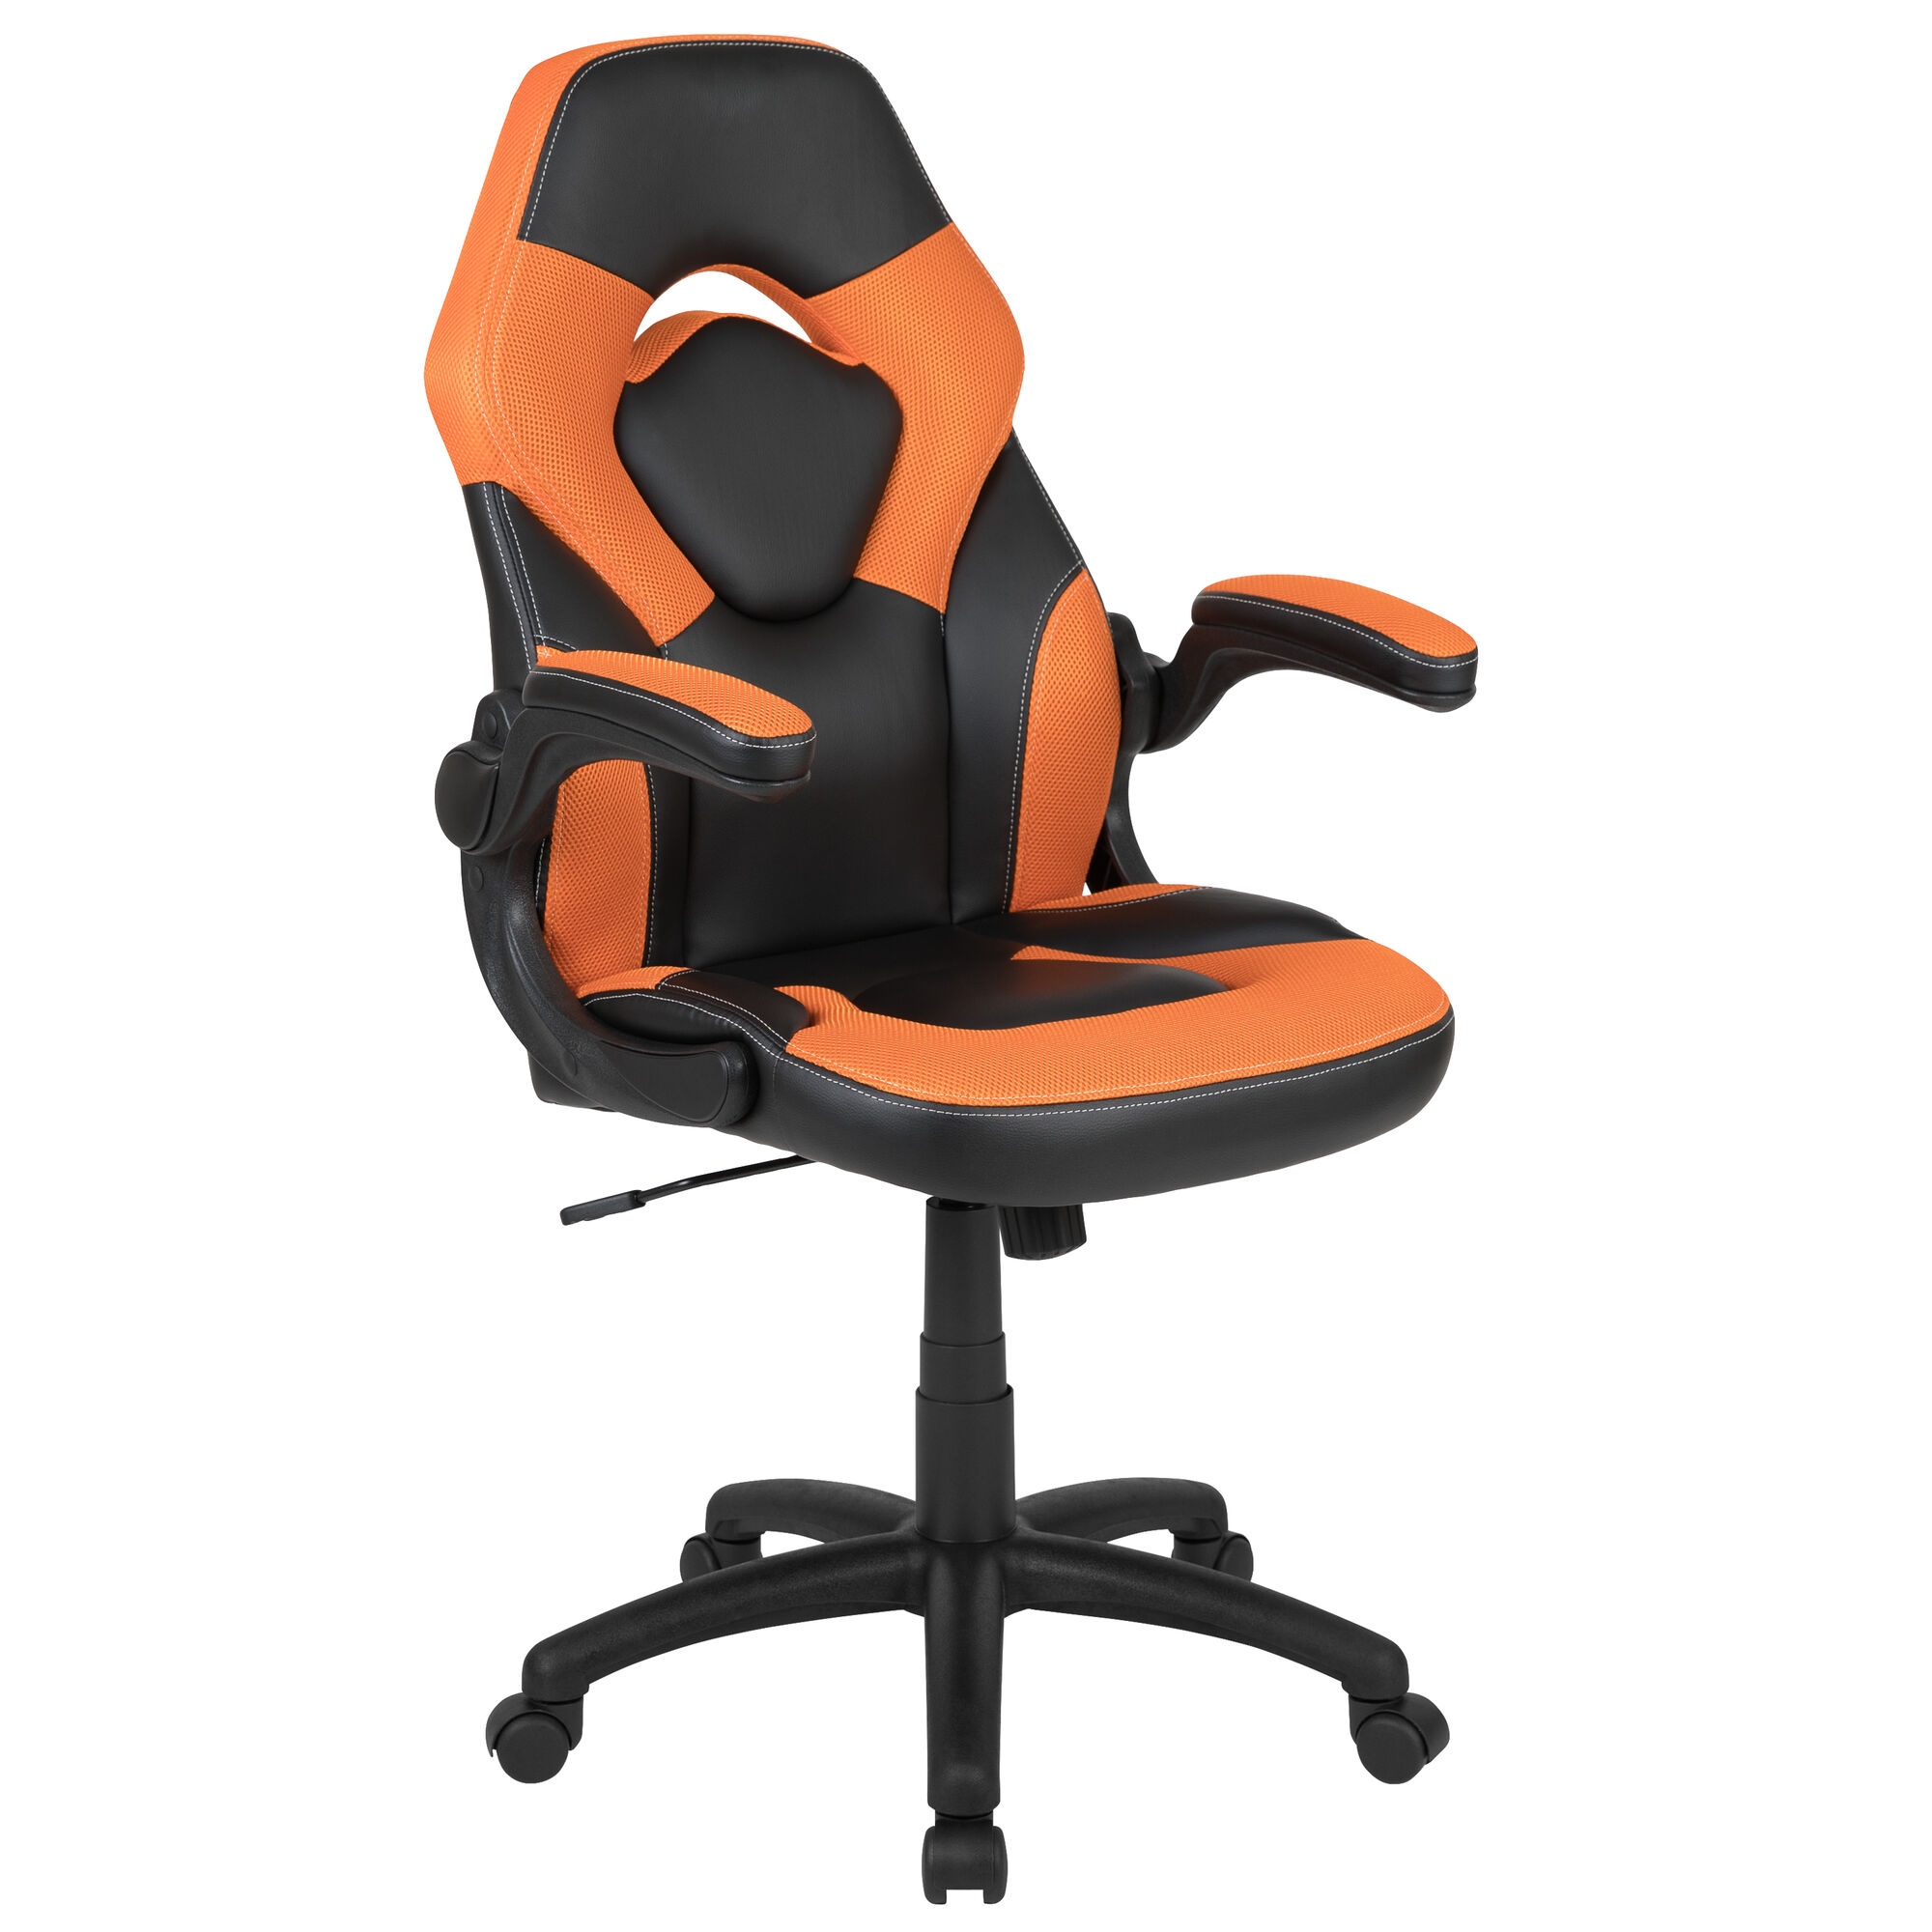 X10 Gaming Chair Racing Office Ergonomic Computer Pc Adjustable Swivel Chair With Flip Up Arms Orange Black Leathersoft